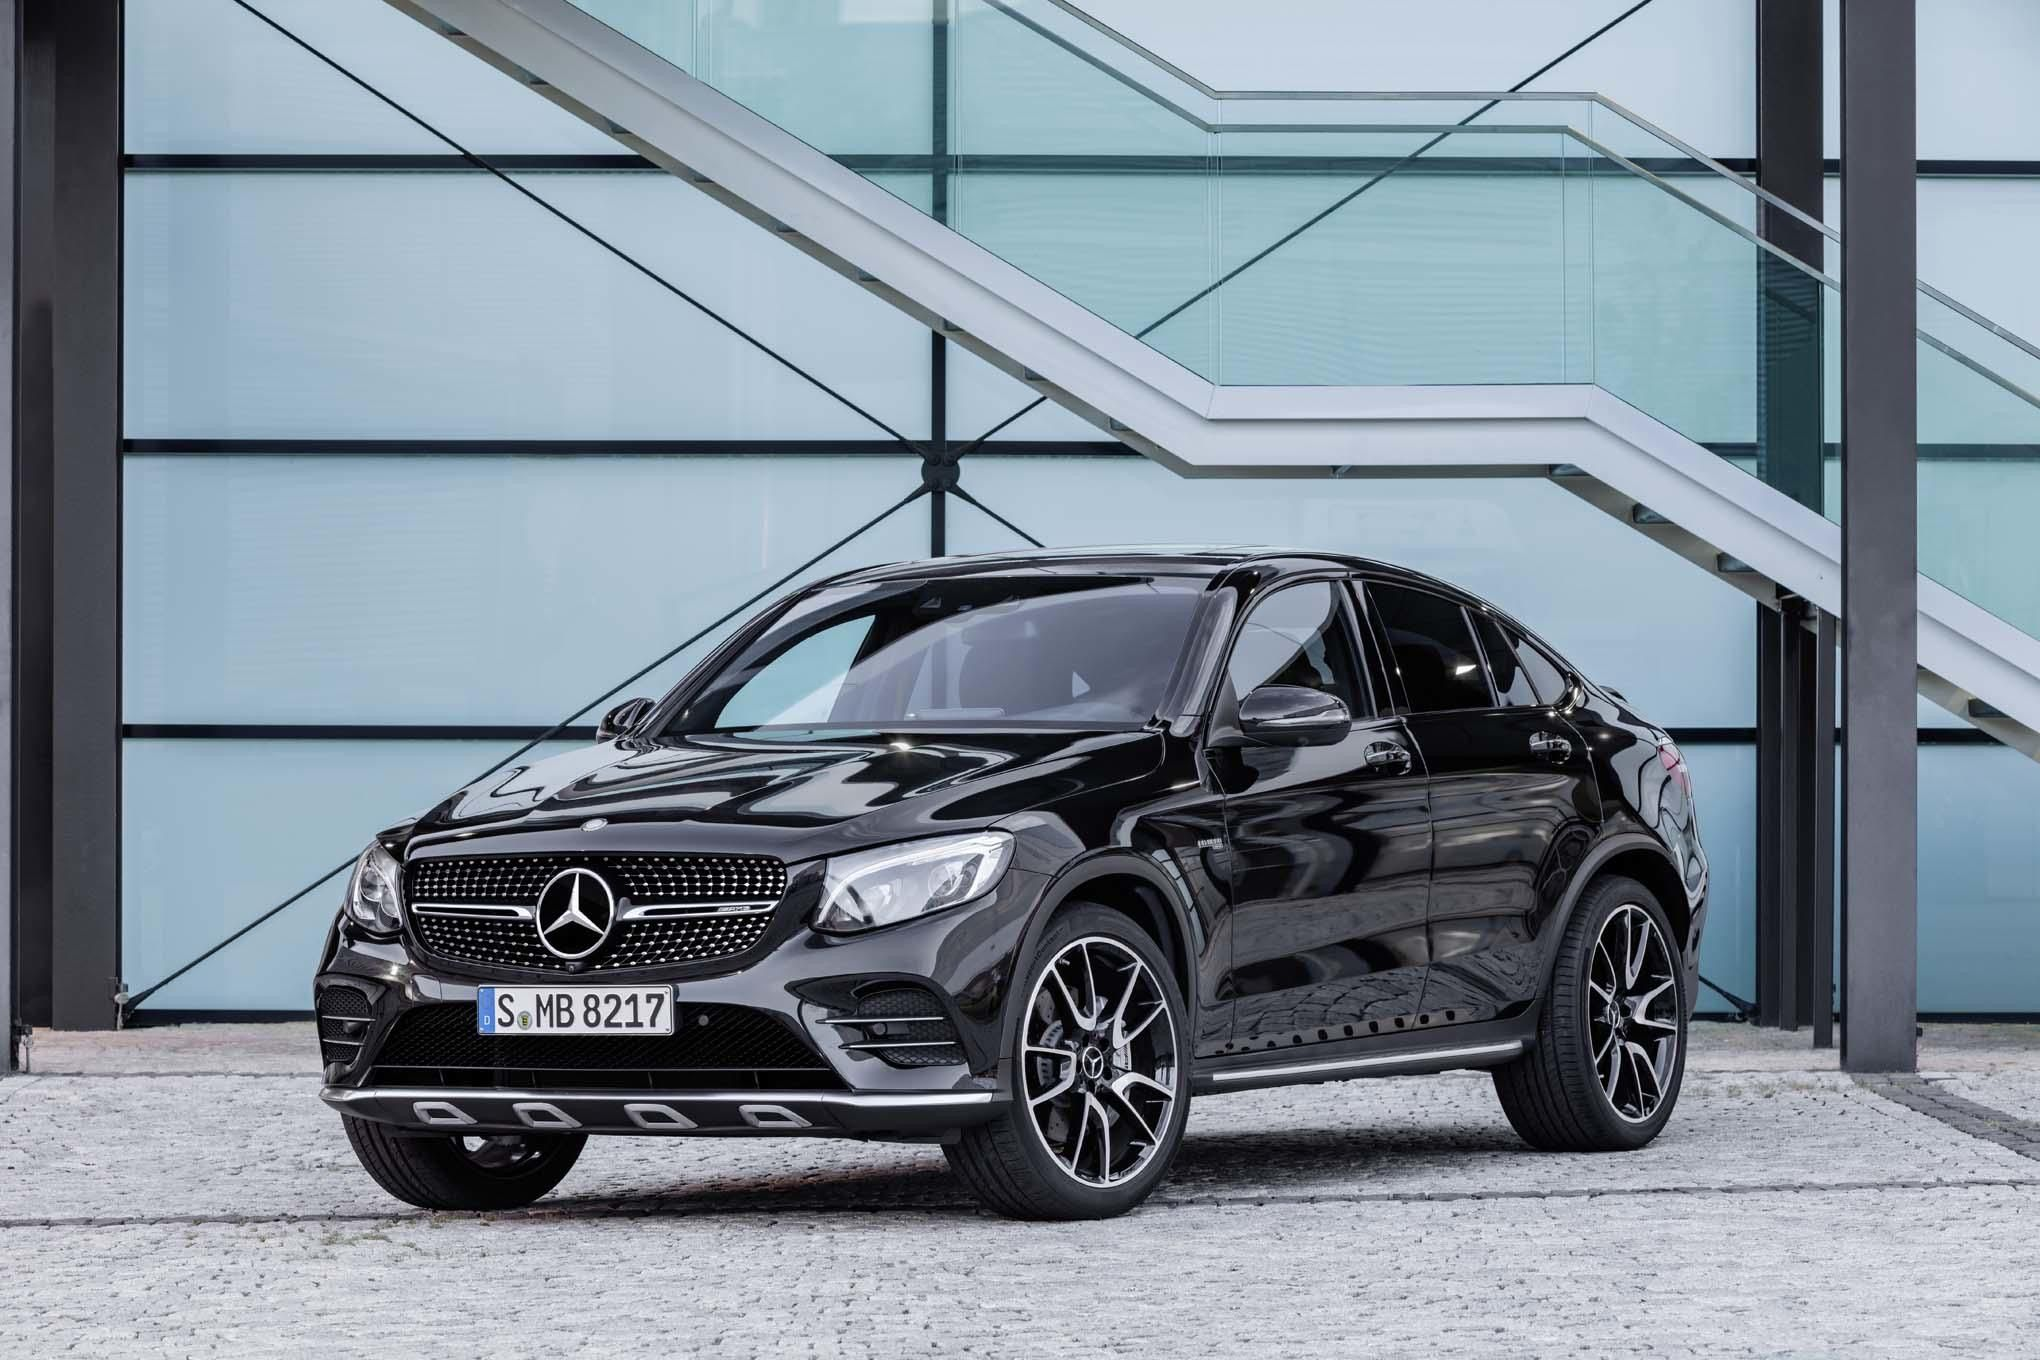 2017 Mercedes Amg Glc43 Coupe To Debut At Paris Motor Show